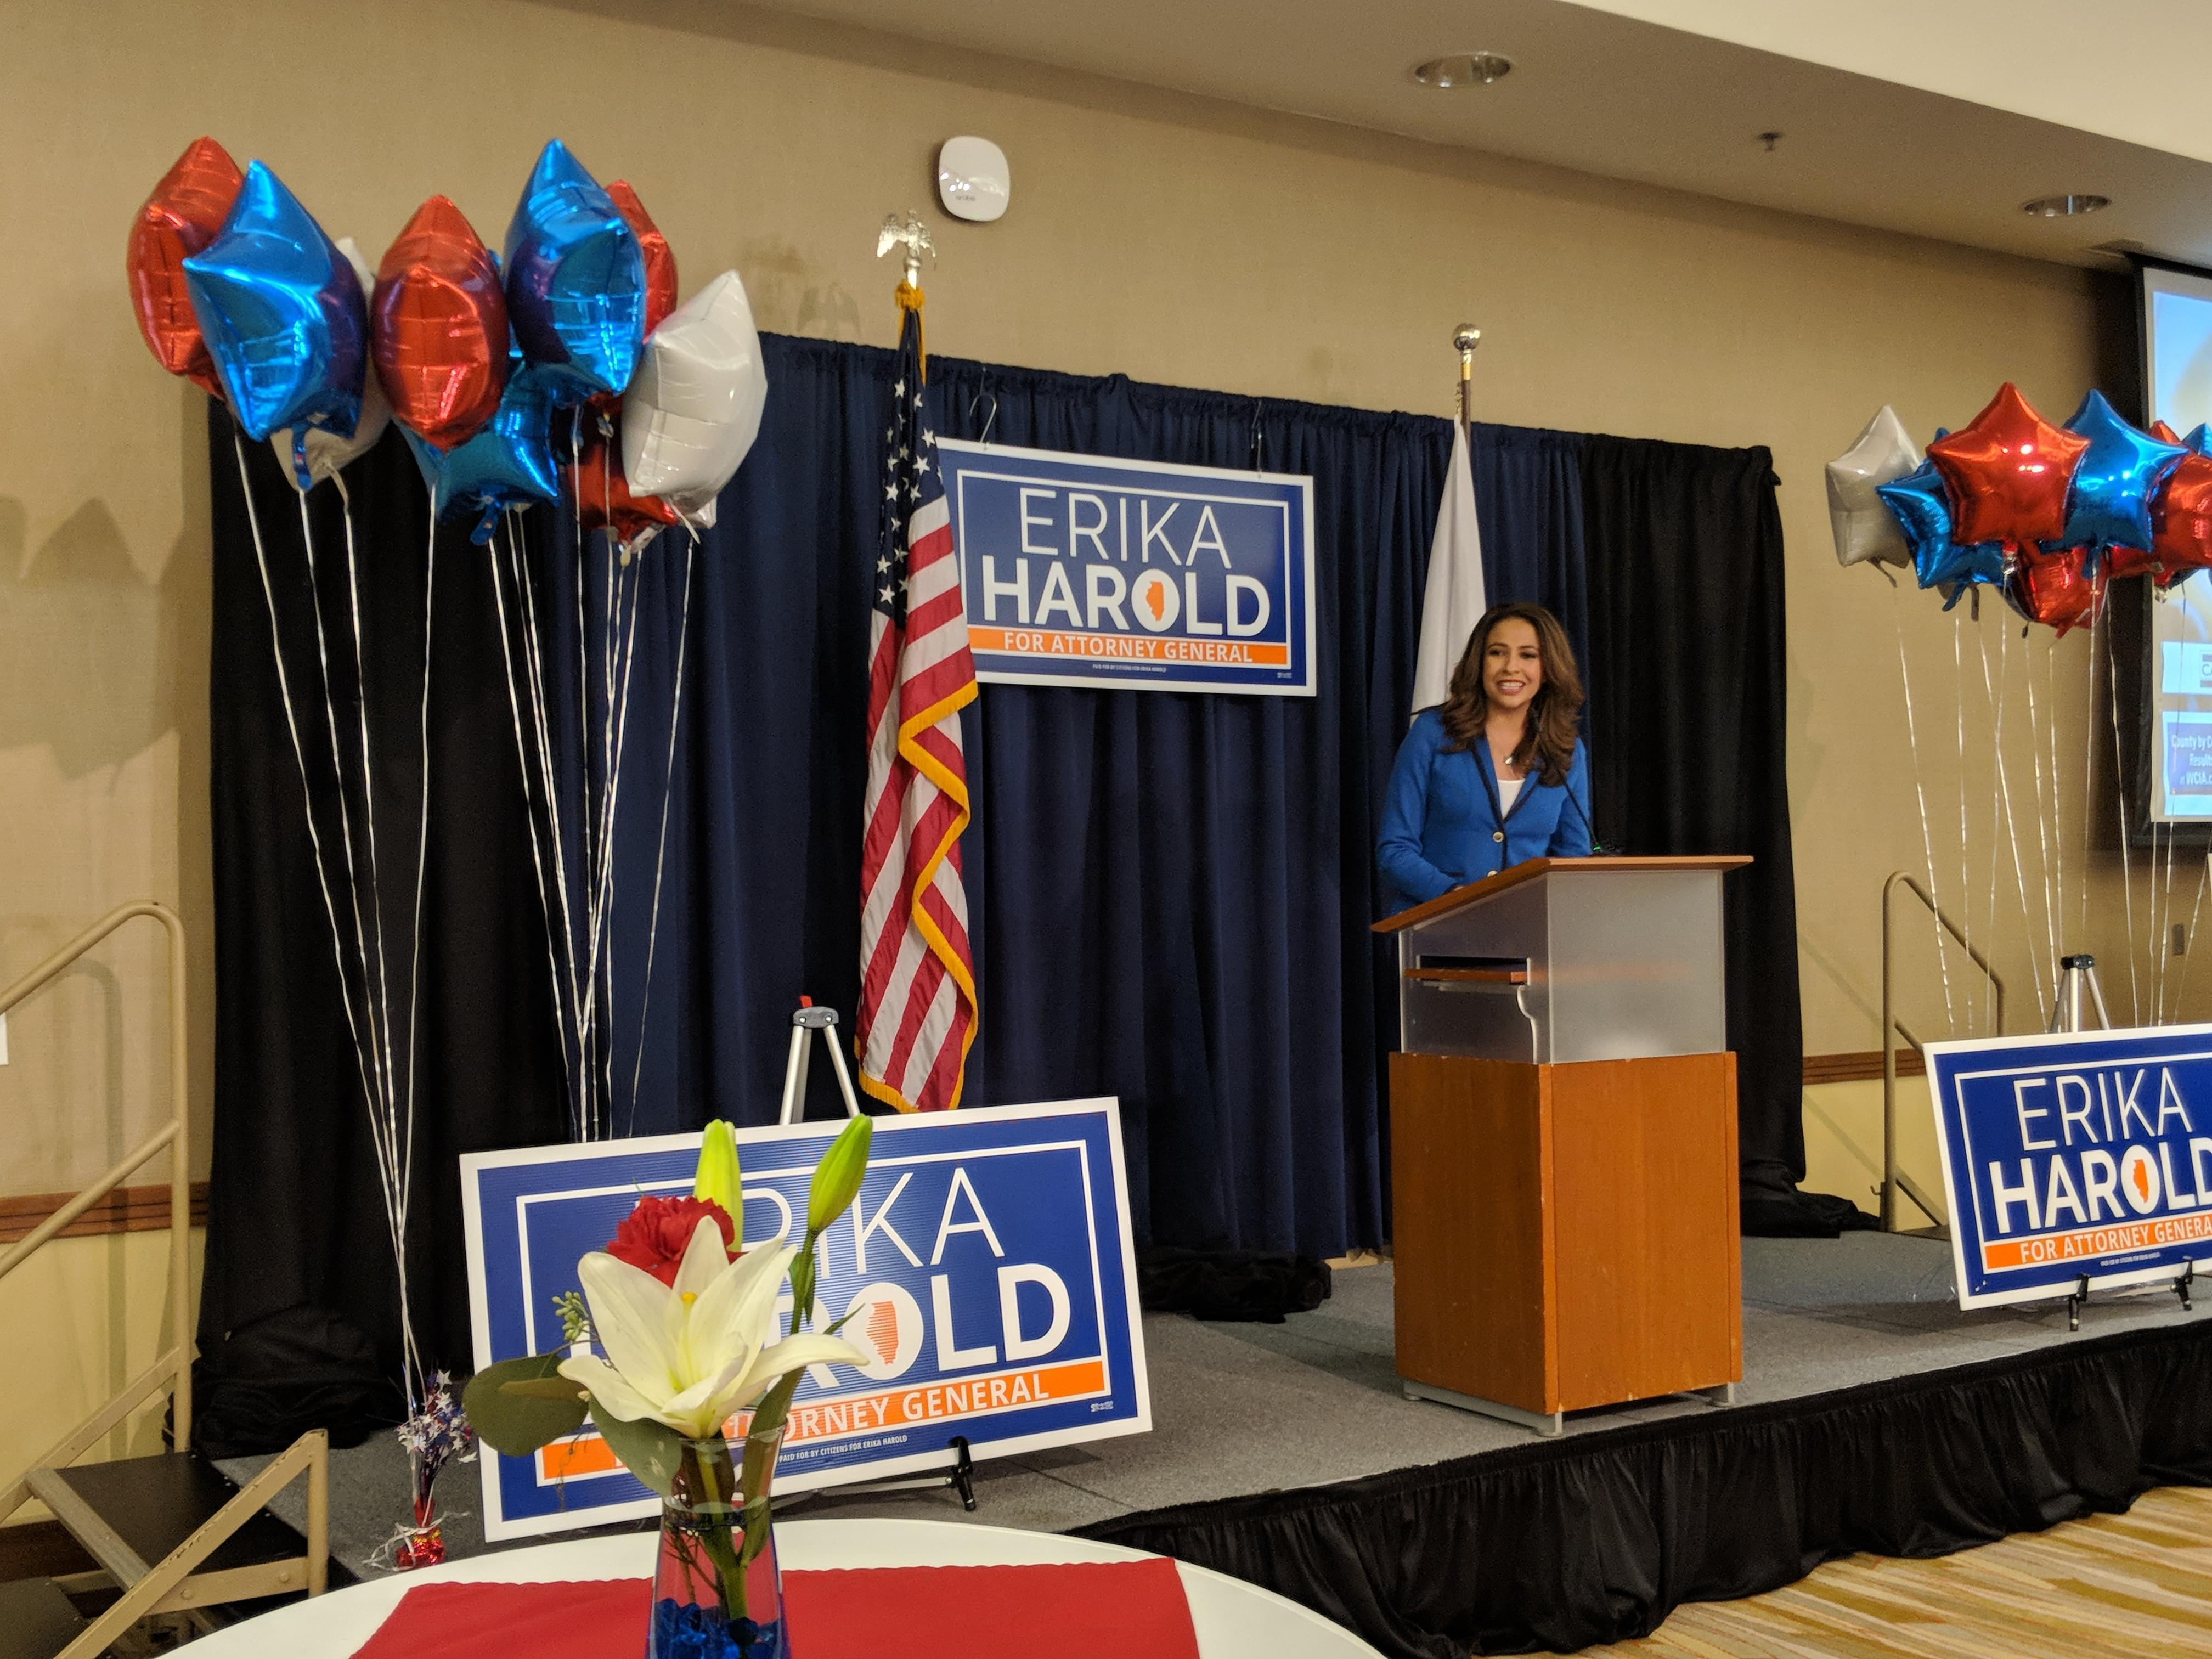 Republican Erika Harold announced she had conceded to her Democratic opponent, Kwame Raoul, in the race for Illinois Attorney General at an election night viewing party at the I-Hotel in Champaign on Tuesday, Nov. 6, 2018.